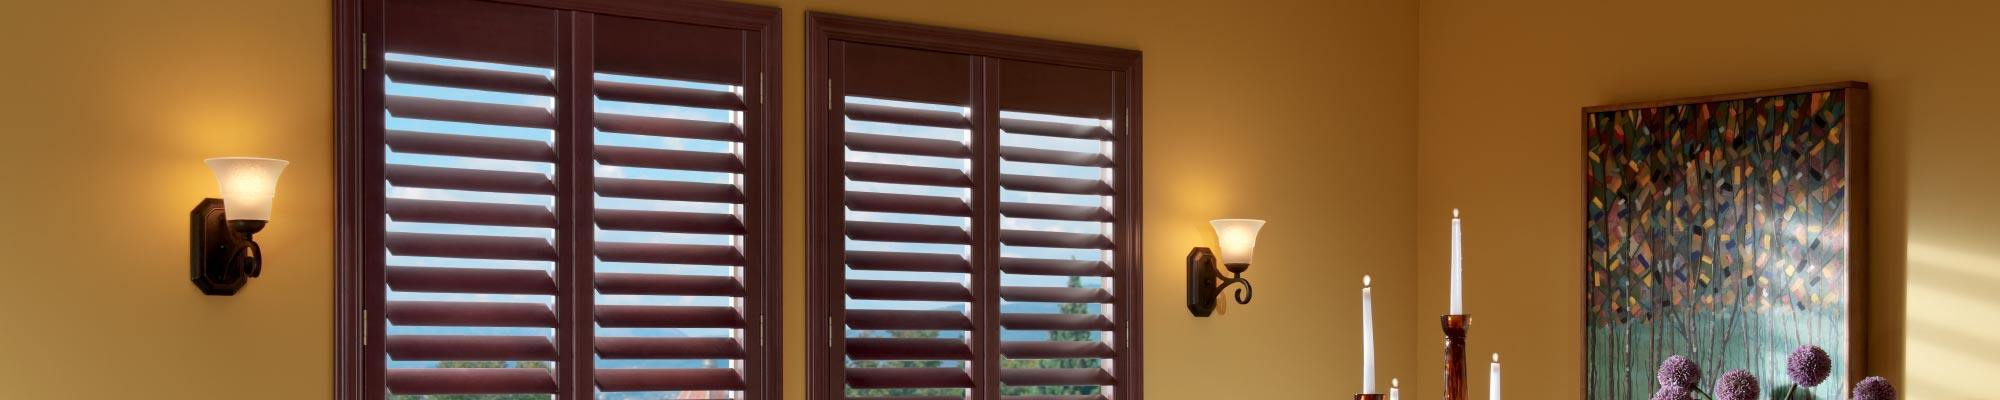 plantation shutters las vegas nv